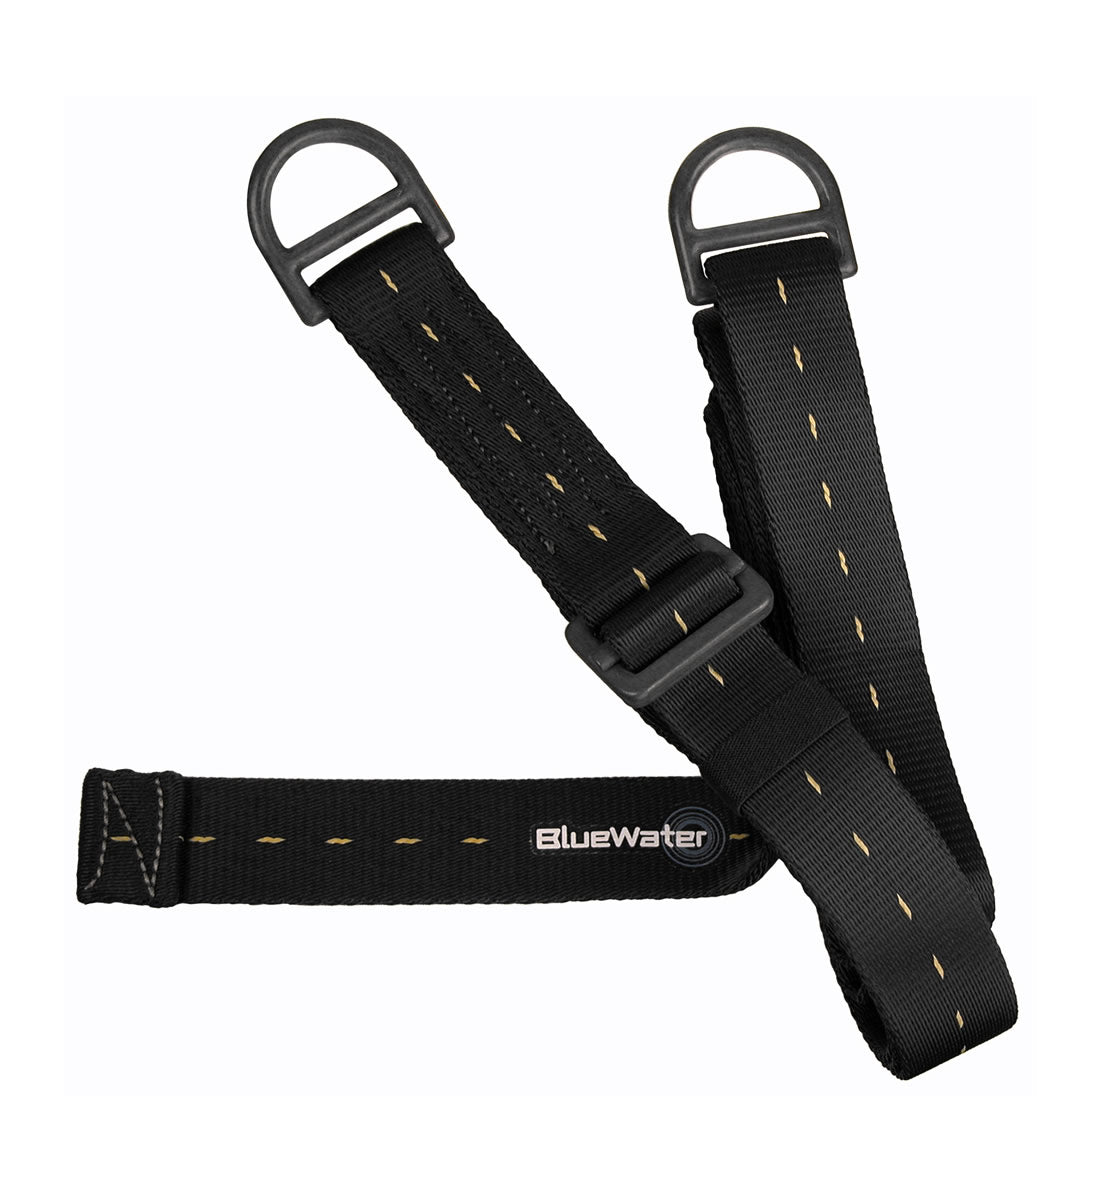 Bluewater Heavy Duty Adjustable Anchor Sling